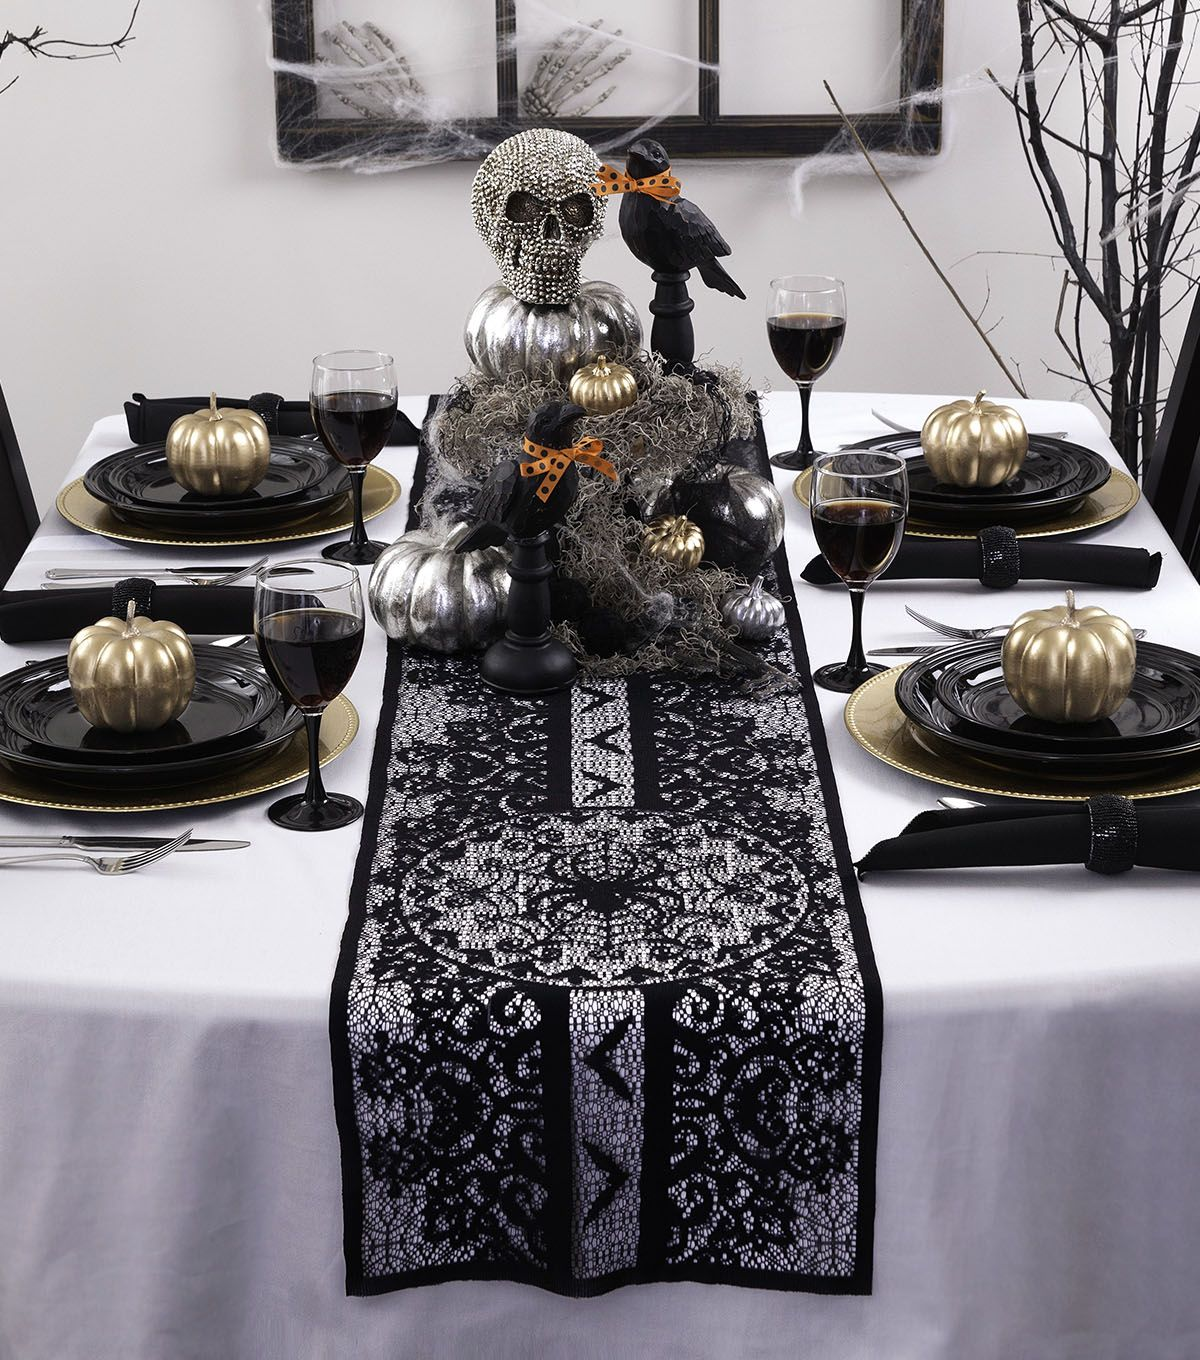 Maker\u0027s Halloween 72\u0027\u0027x14\u0027\u0027 Table Runner-Spider Halloween decor - Pinterest Halloween Decorations